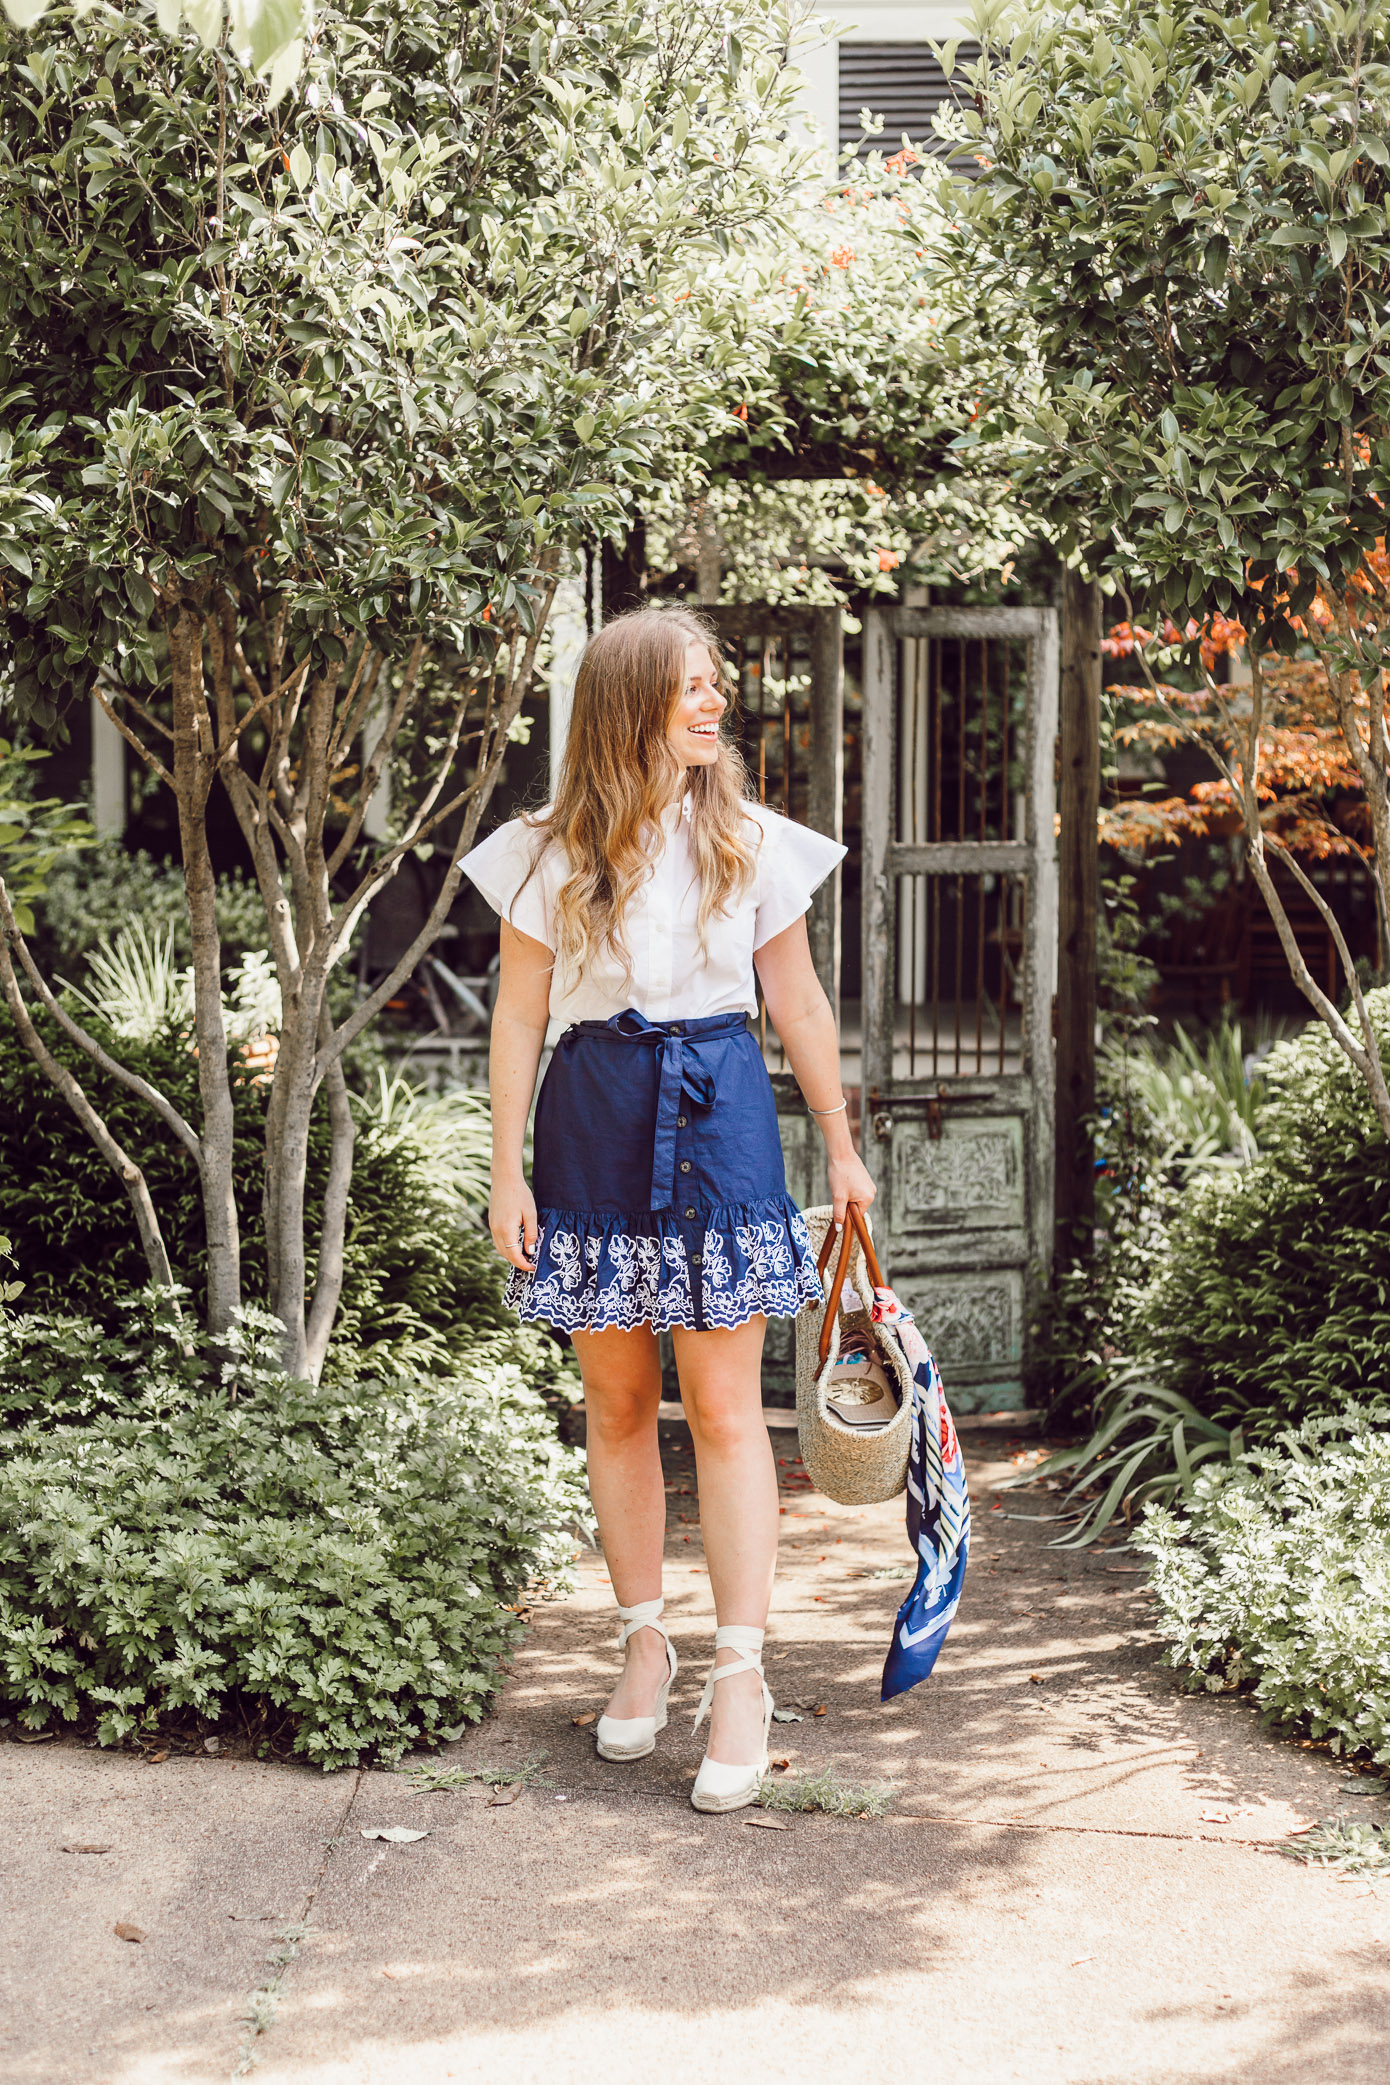 Southern Summer Style | Draper James Summer Arrivals | Louella Reese Life & Style Blog